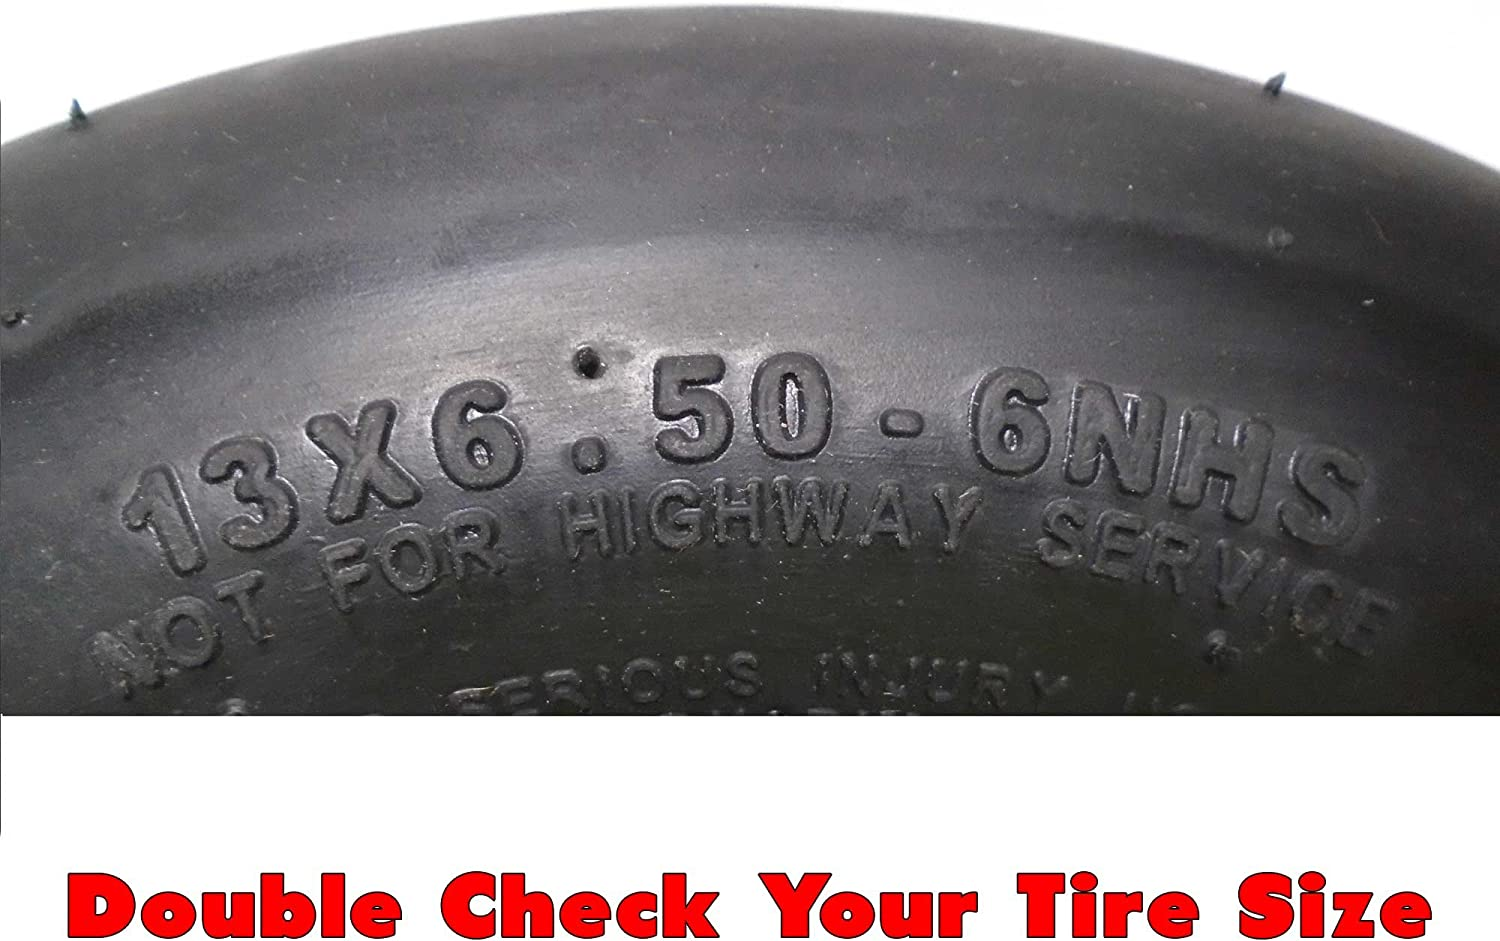 MowerPartsGroup 1 5035-1 Walker Pneumatic Tire Assembly 13x6.50-6 Replaces 5035 5036